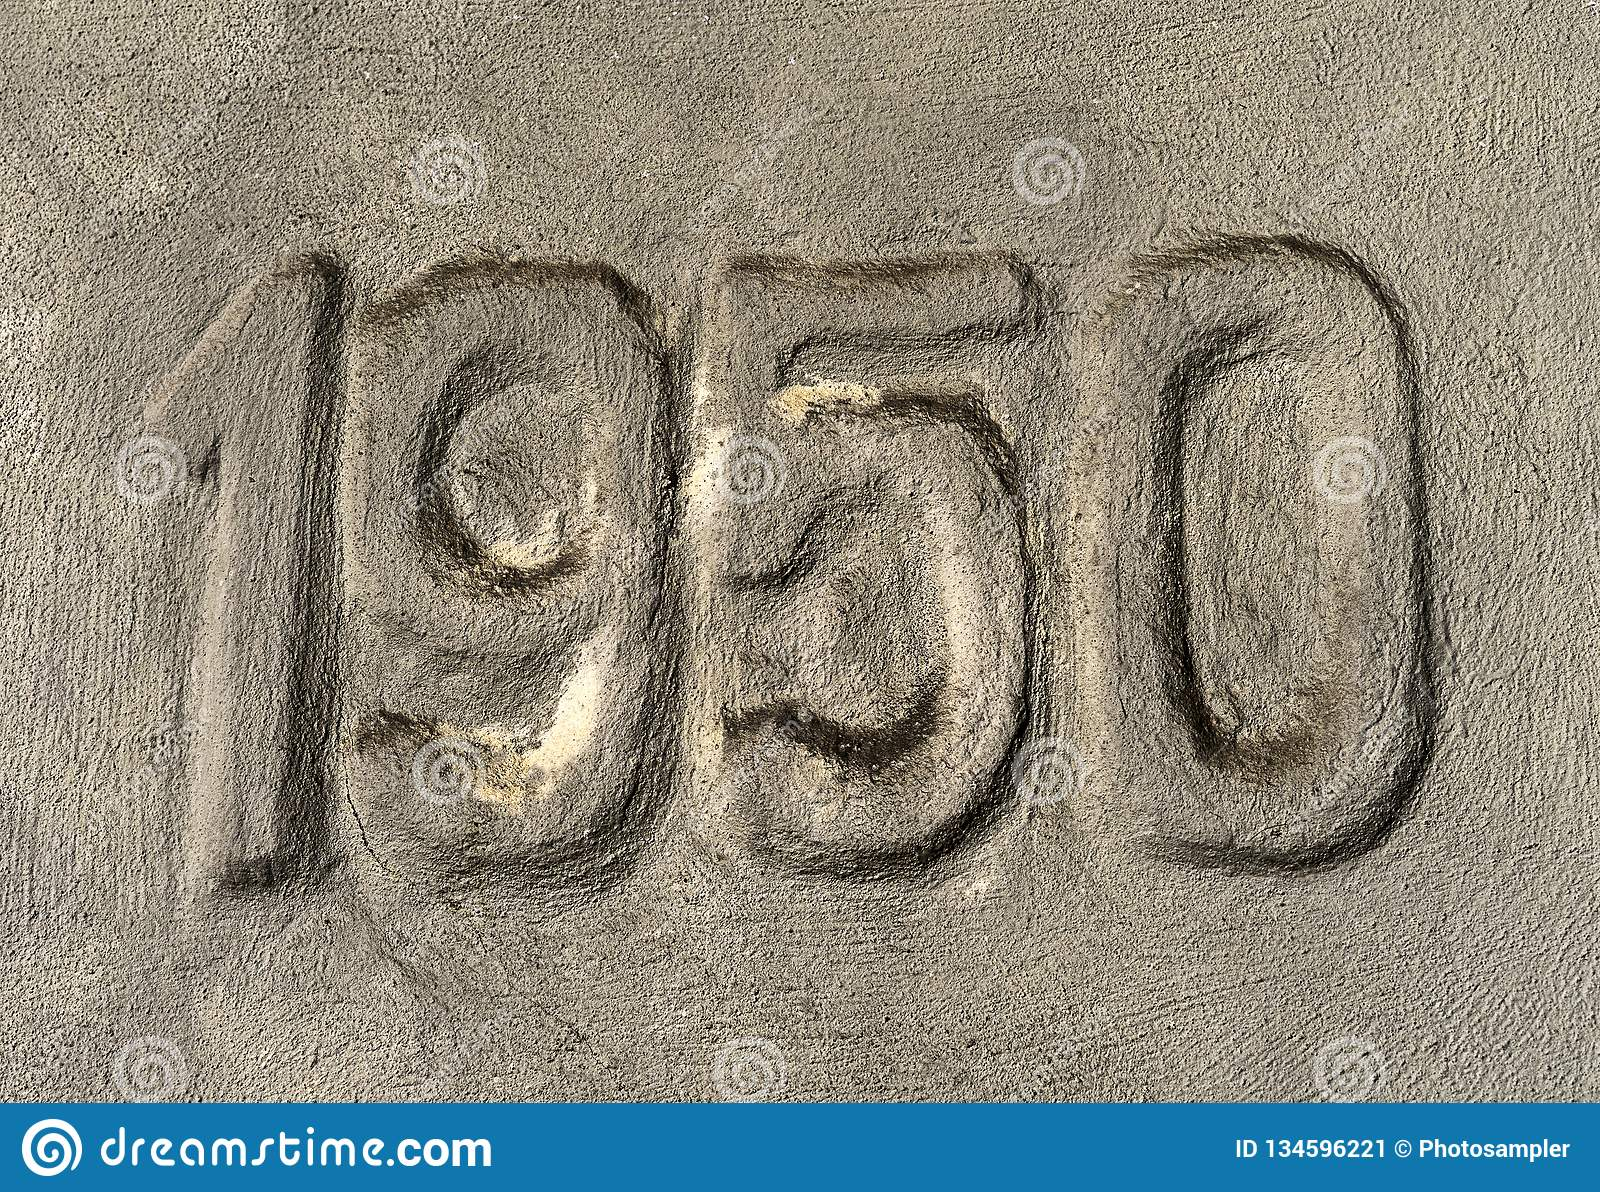 Number 1950 marked in the concrete